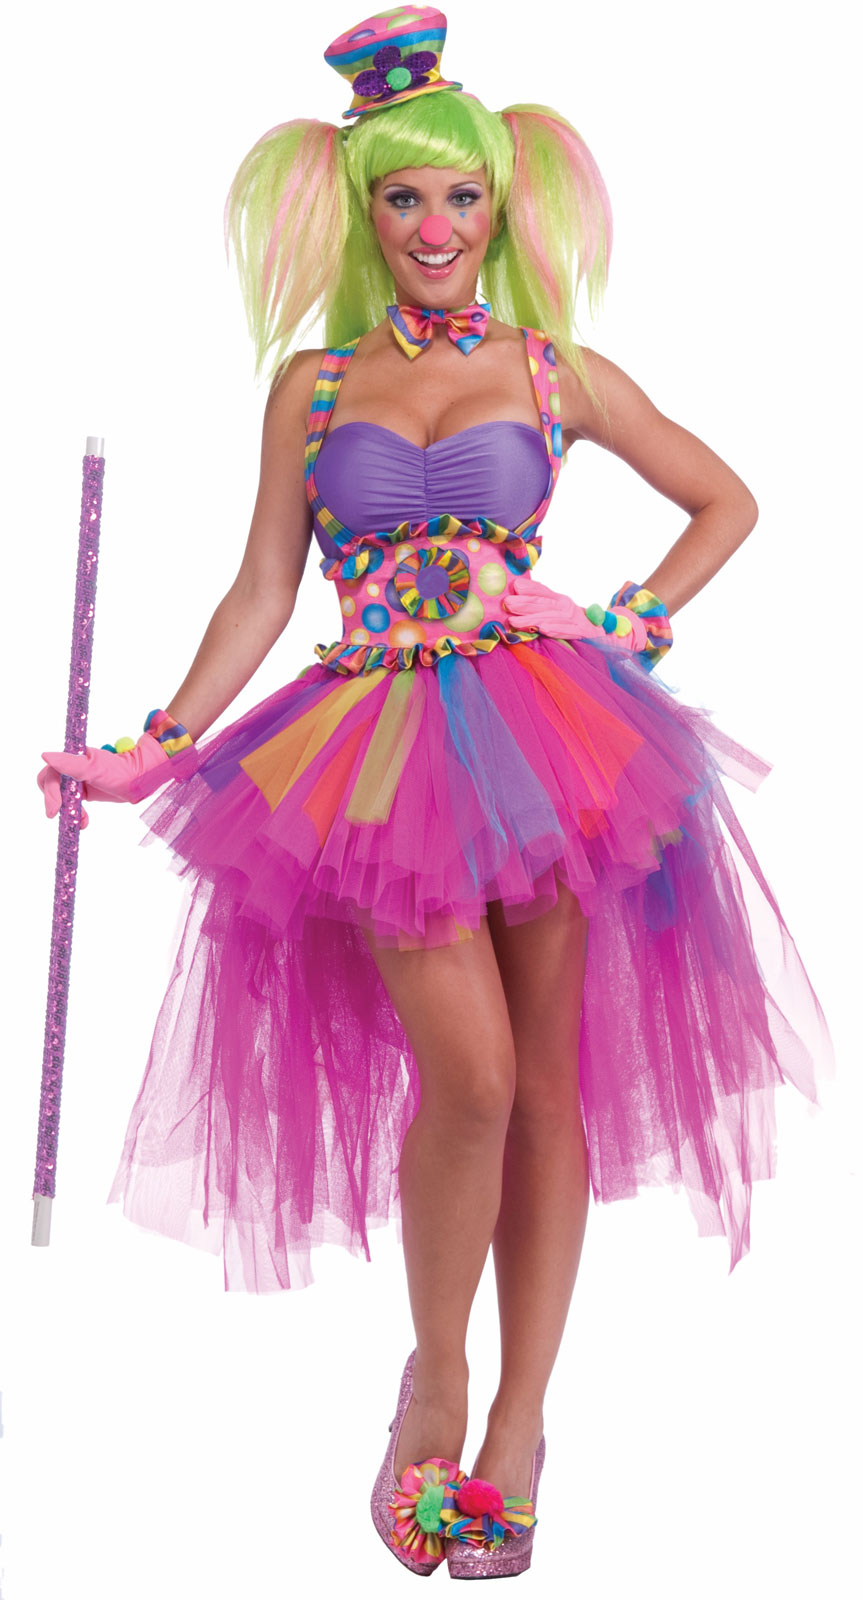 Tutu Lulu The Clown Adult Costume | BuyCostumes.com